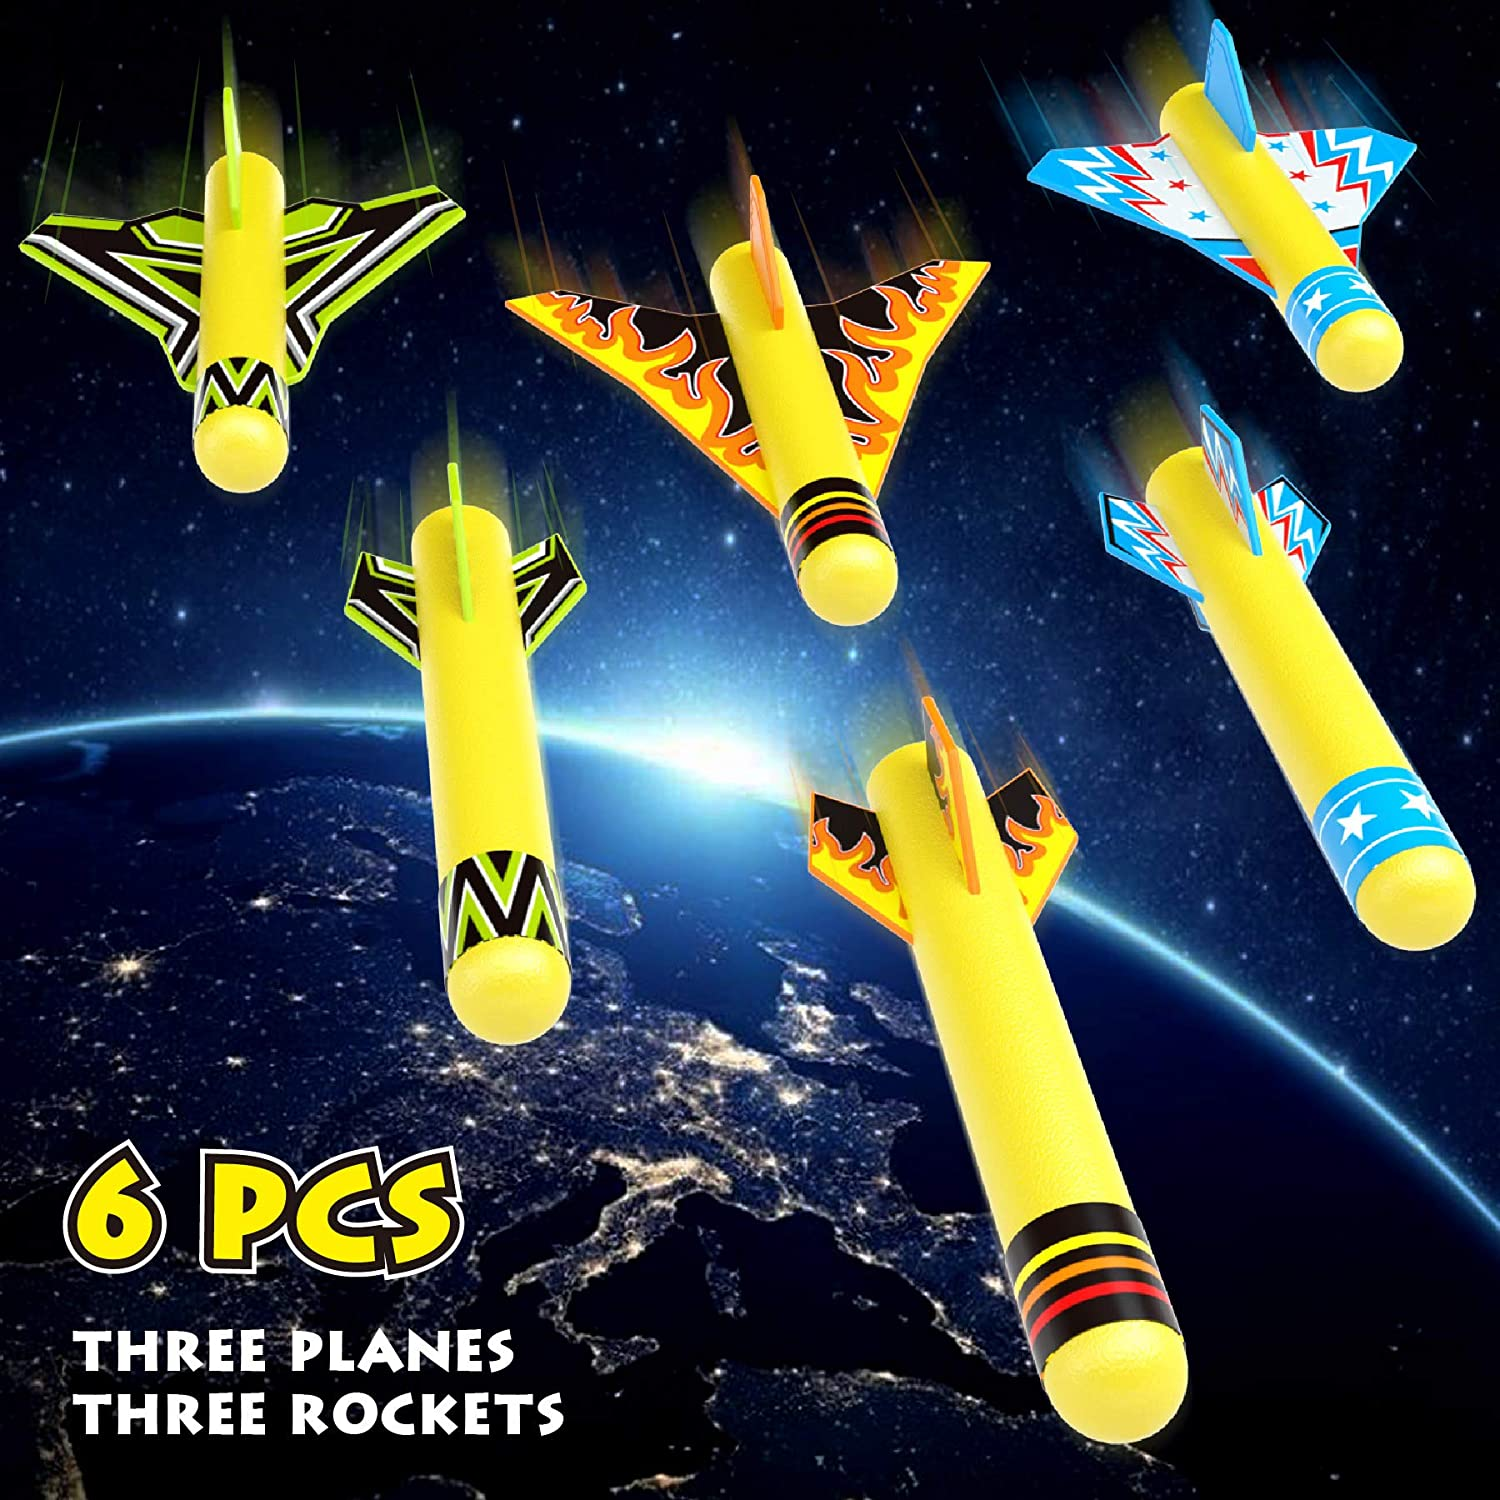 FUNOVA Rocket Launcher for Kids Space Toys for children Stomp Rocket Toy with 3 Foam Rockets and 3 Stunt Planes Jump Rocket Outdoor Toys Games Gift for Boys and Girls Age 5 6 7 8 9 10 Years Old